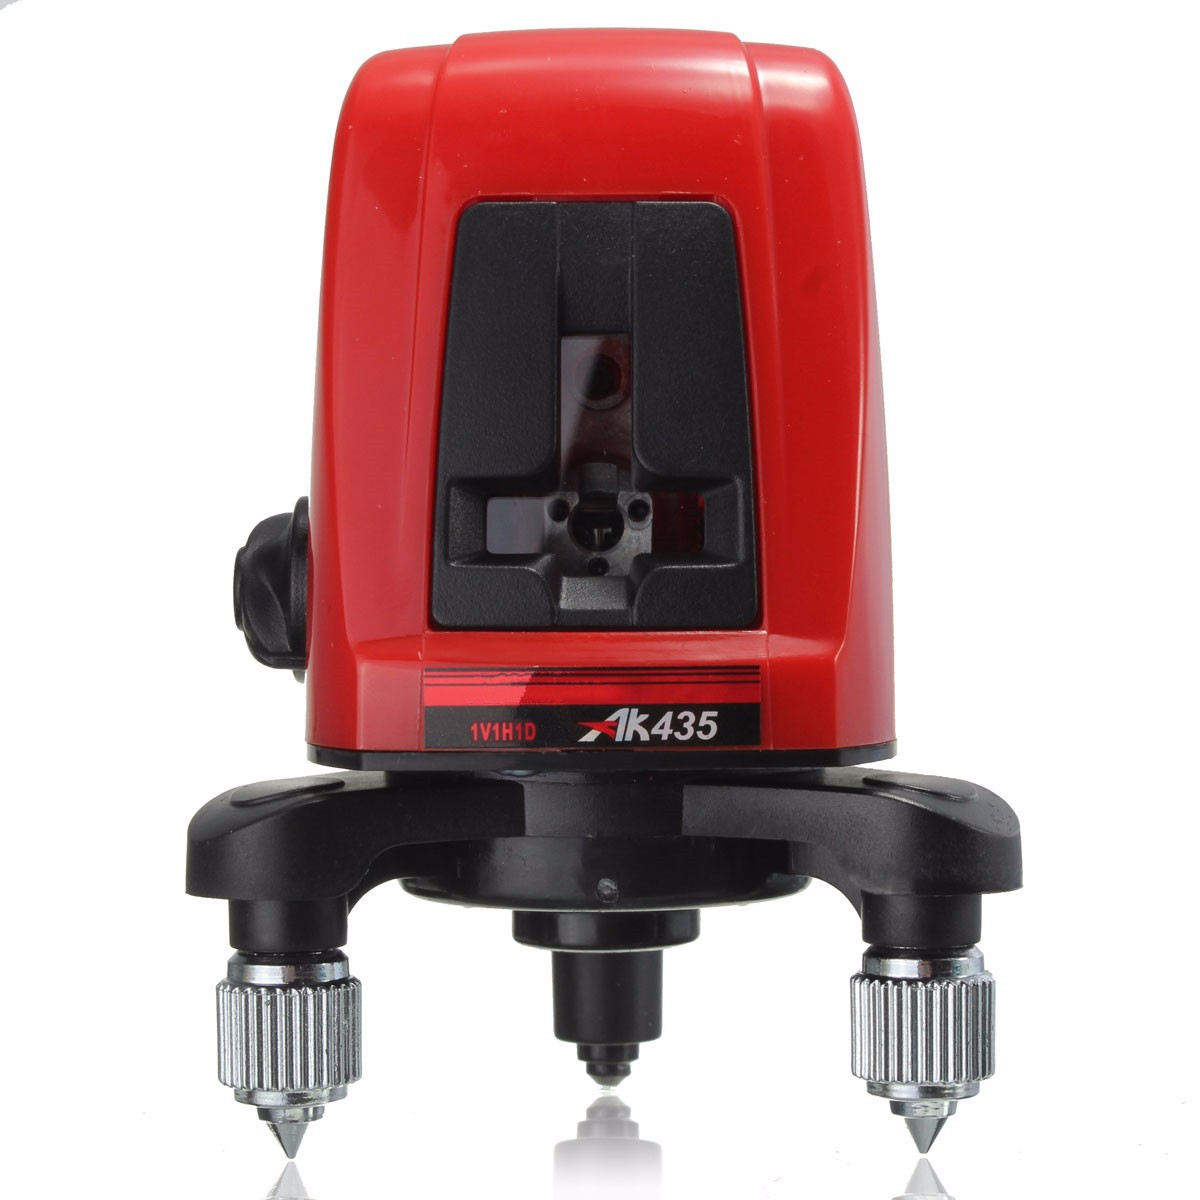 все цены на 360degree Self Leveling Cross Laser line spirit Level Red 2 Line 1 Point swivel head Tools Automatic Leveling Laser Level